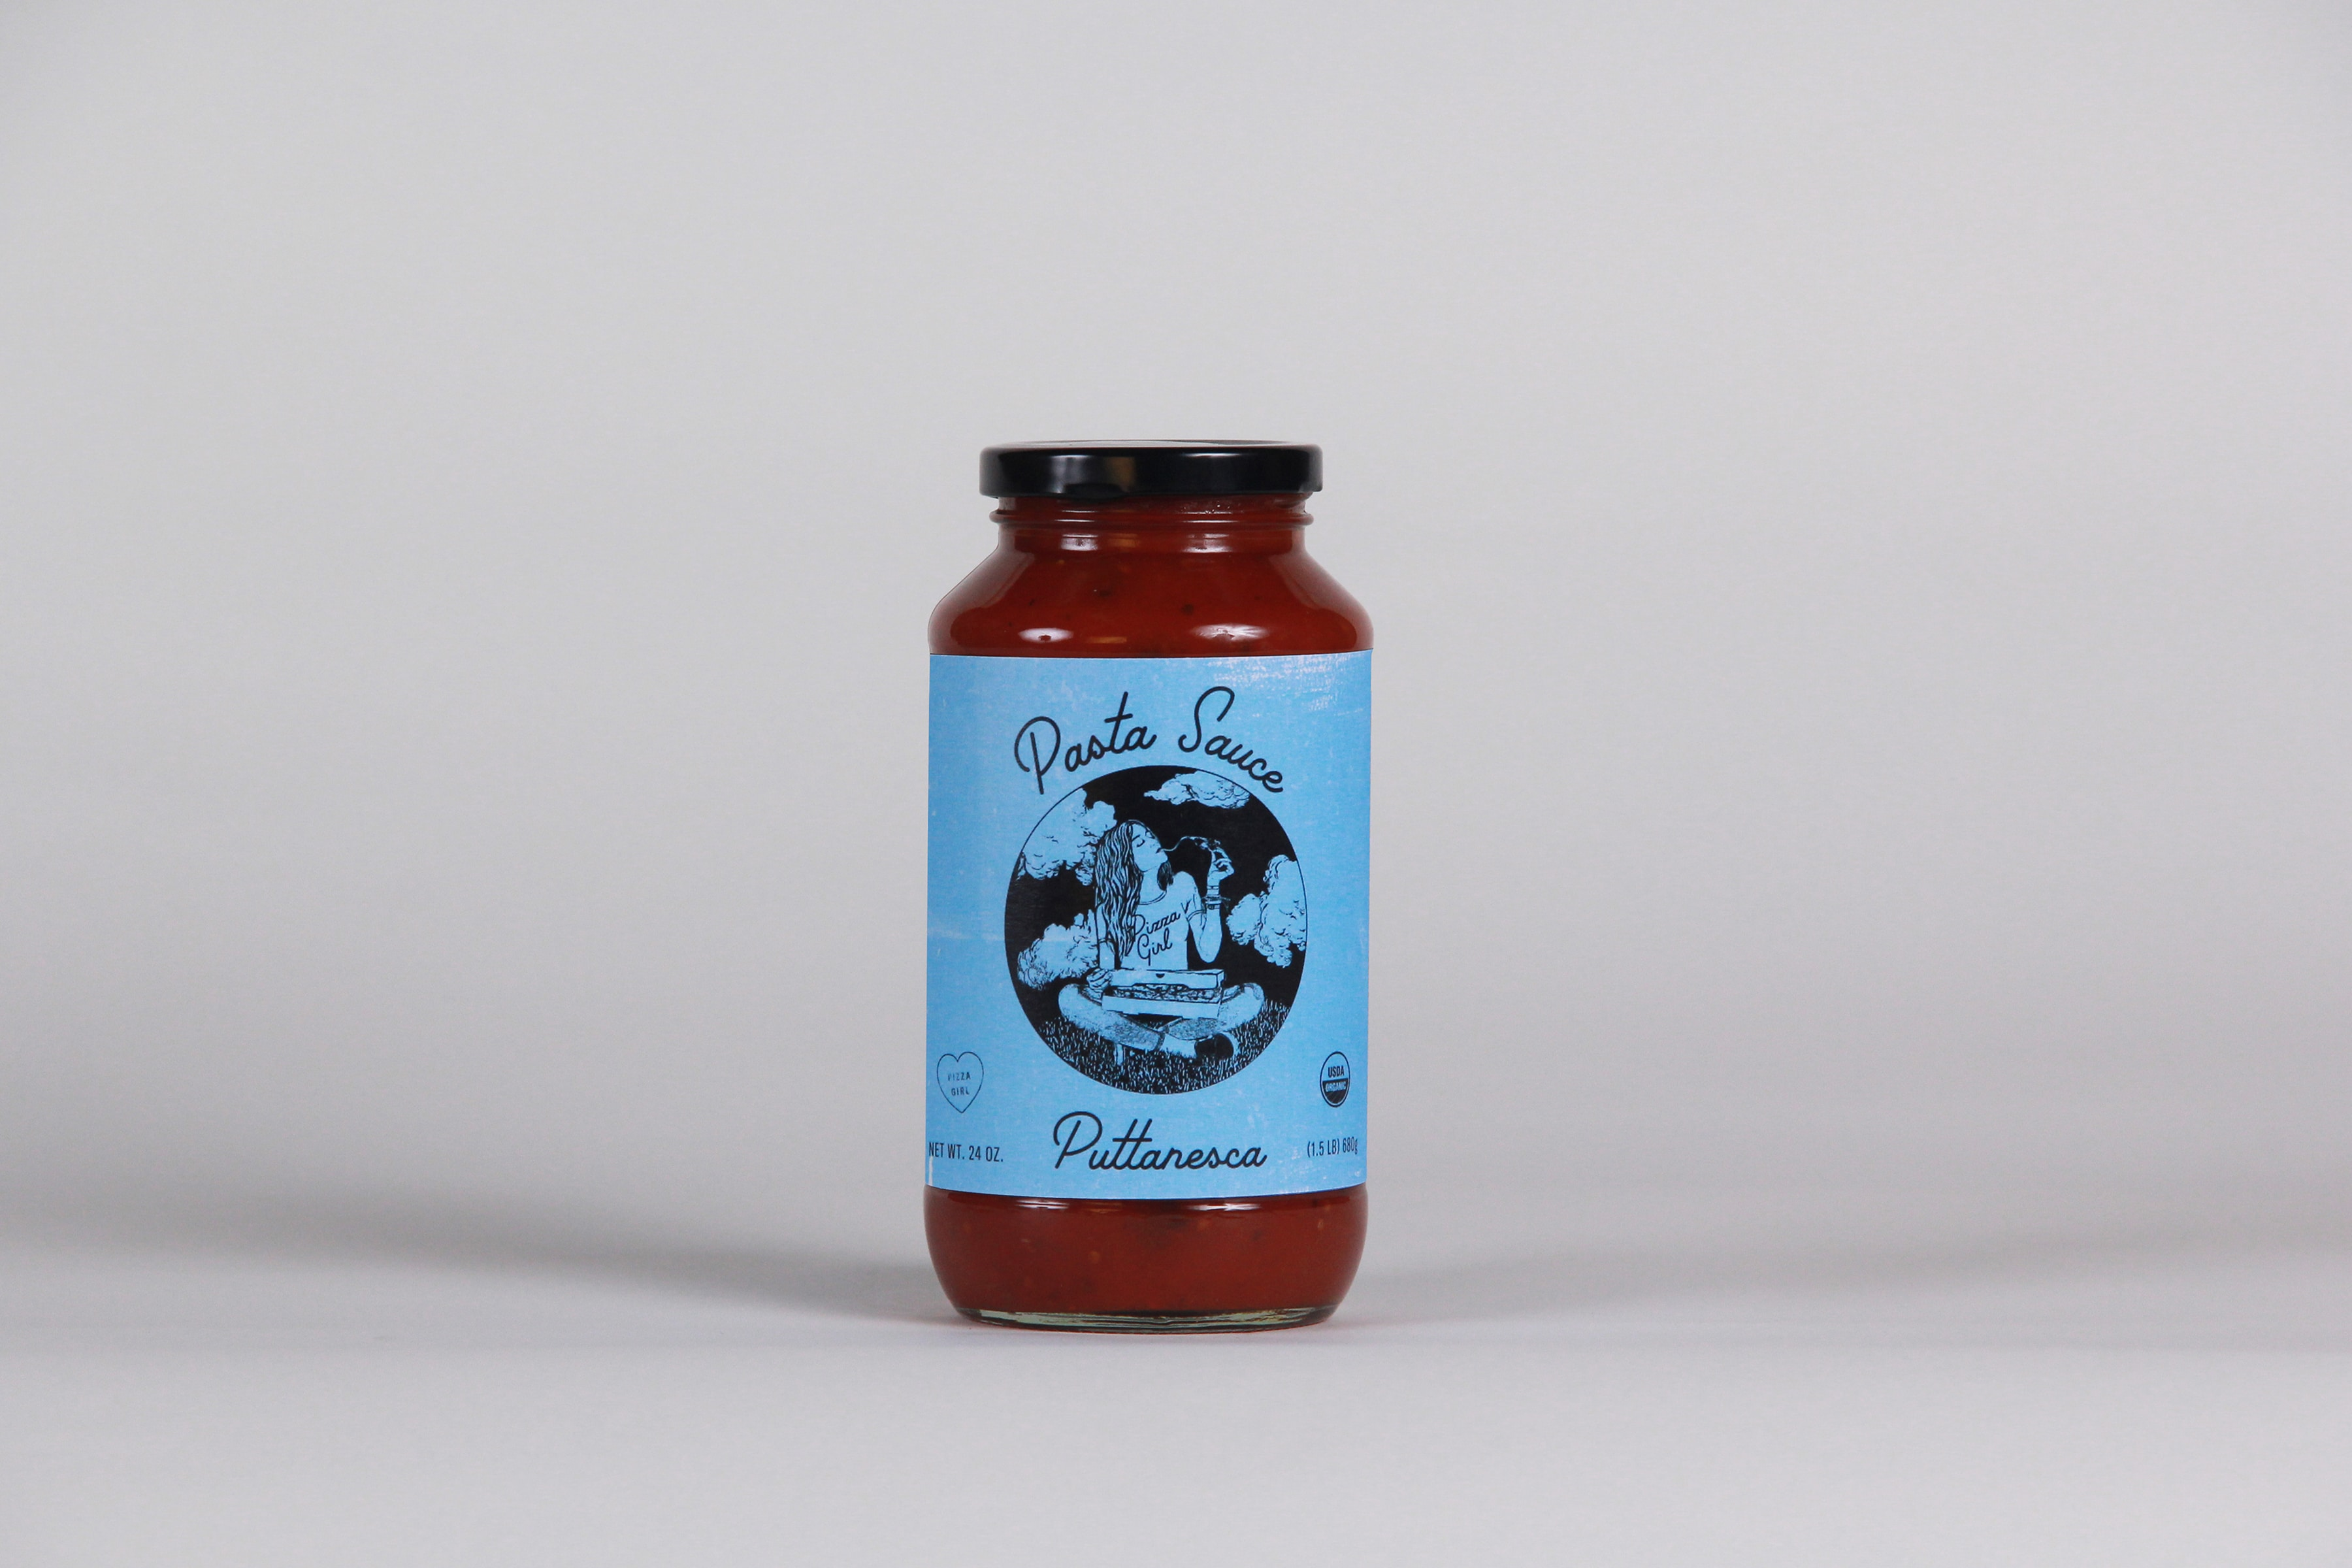 Pizza Girl Organic, Locally-Sourced Pasta Sauce Line Launches